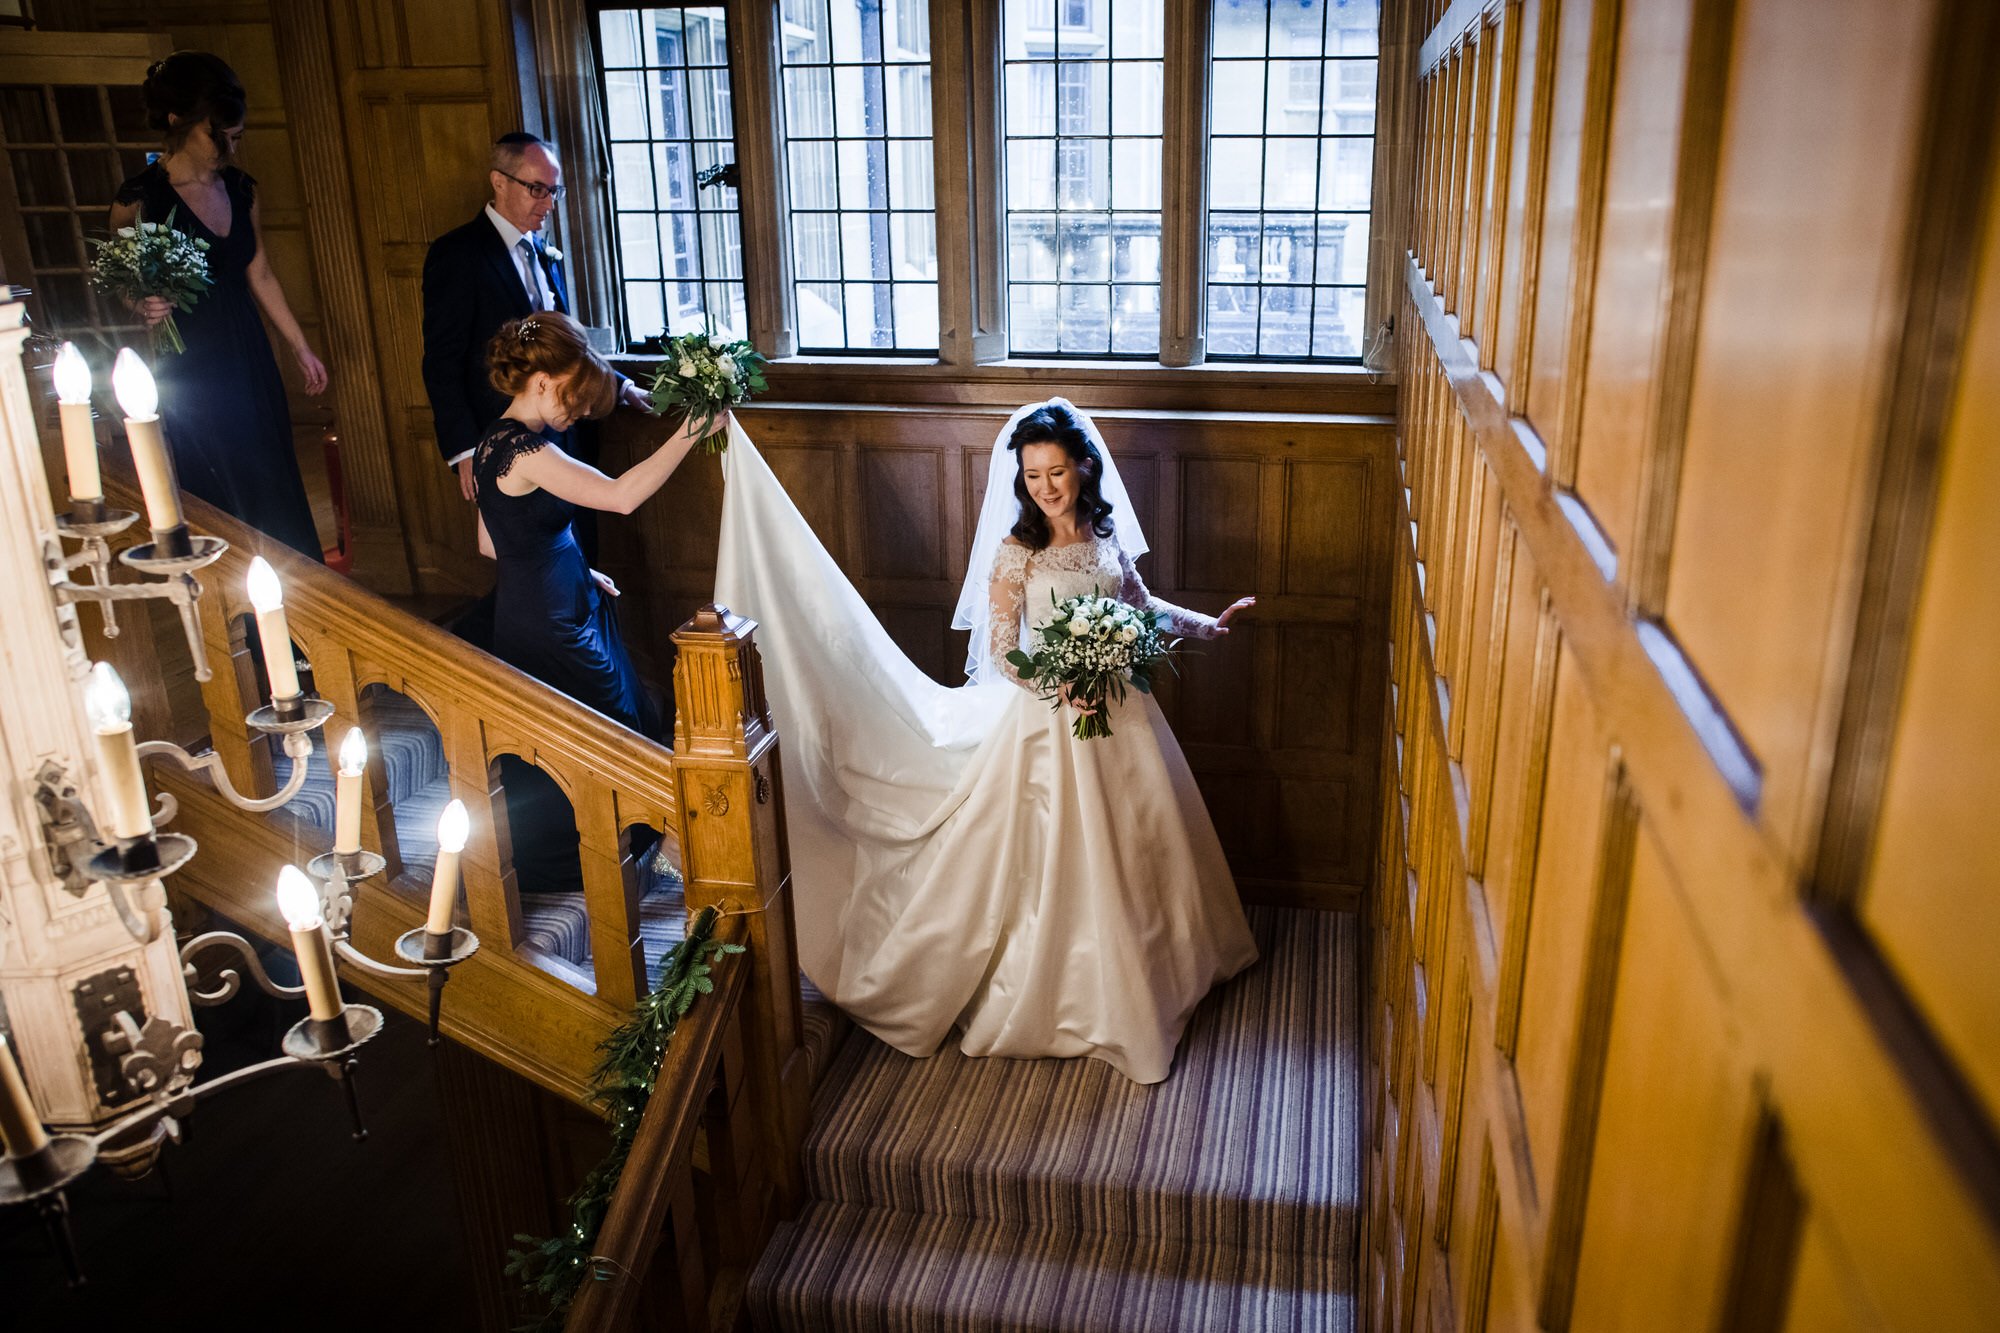 Bride walks down stairs at Coombe lodge wedding venue